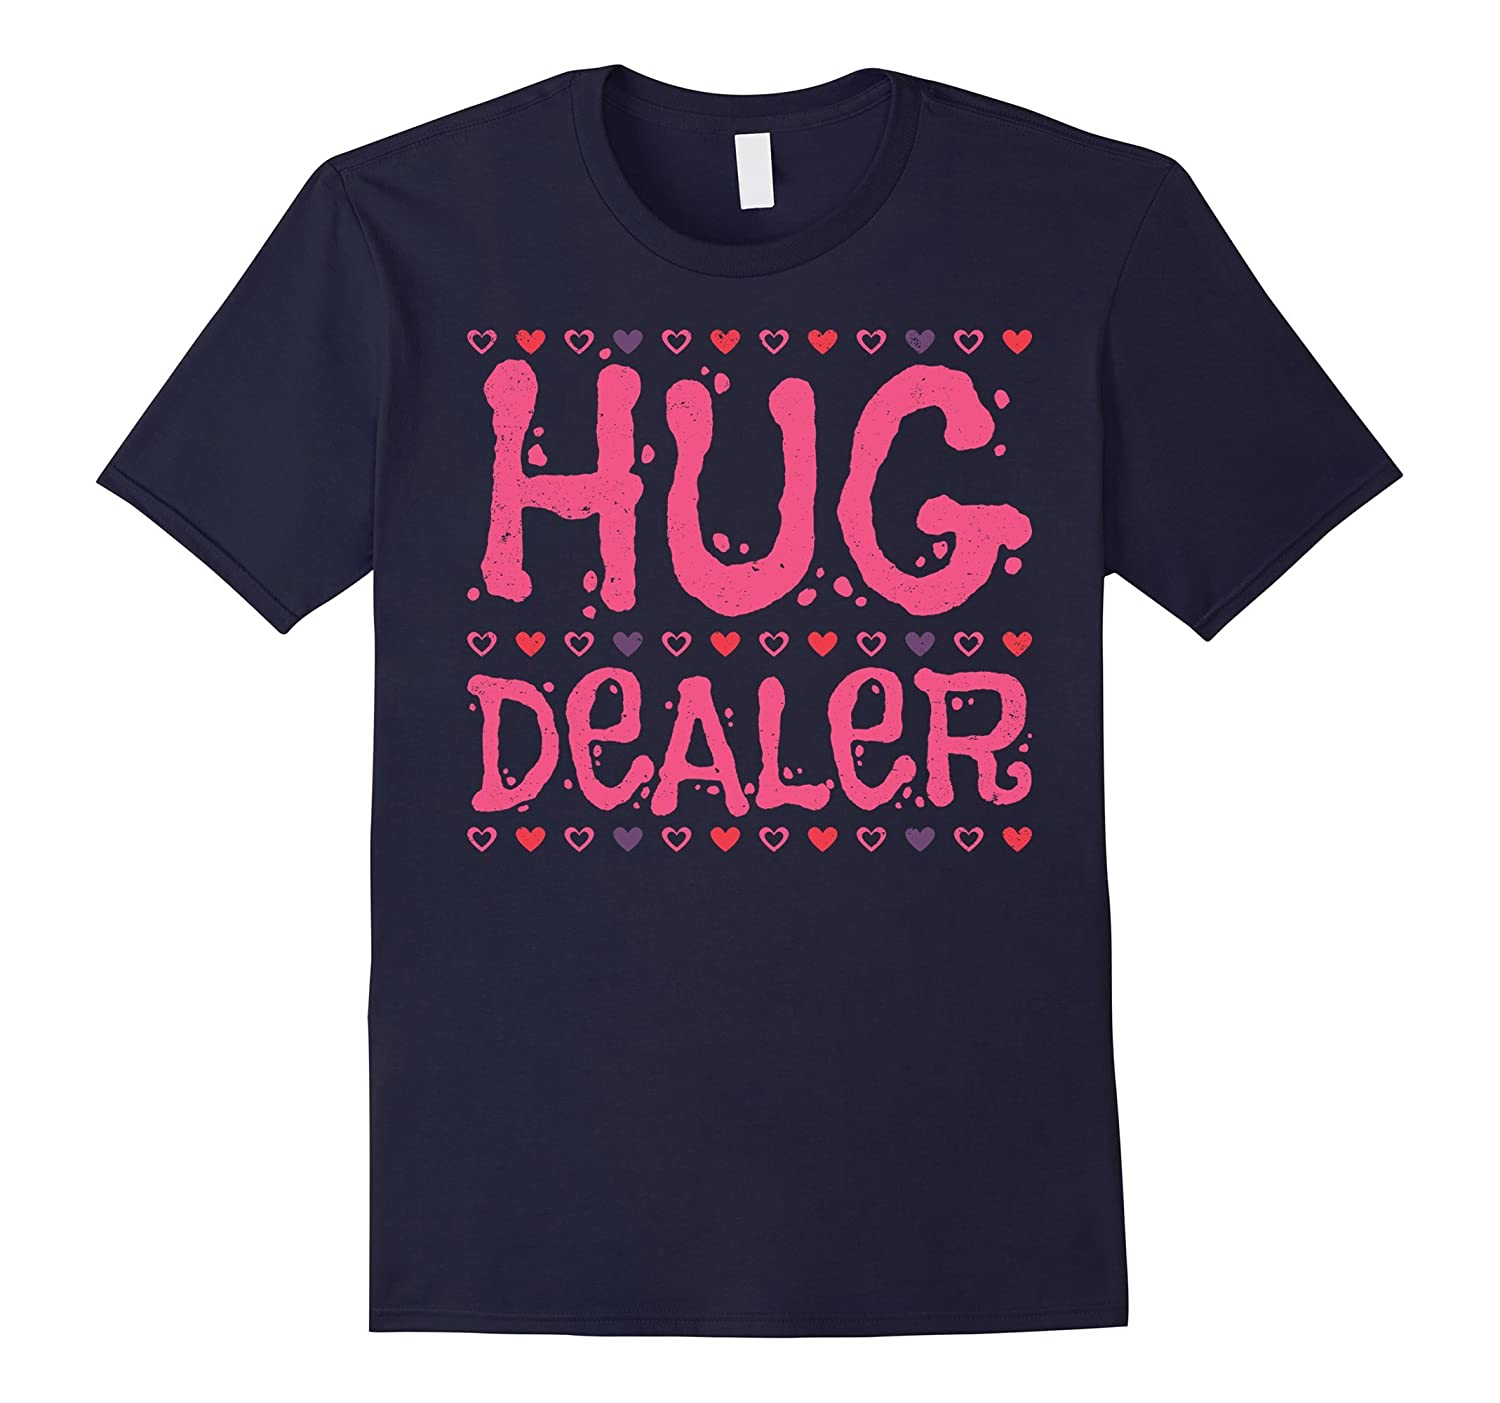 Hug Dealer - Funny Sayings Parody T-shirt-Vaci